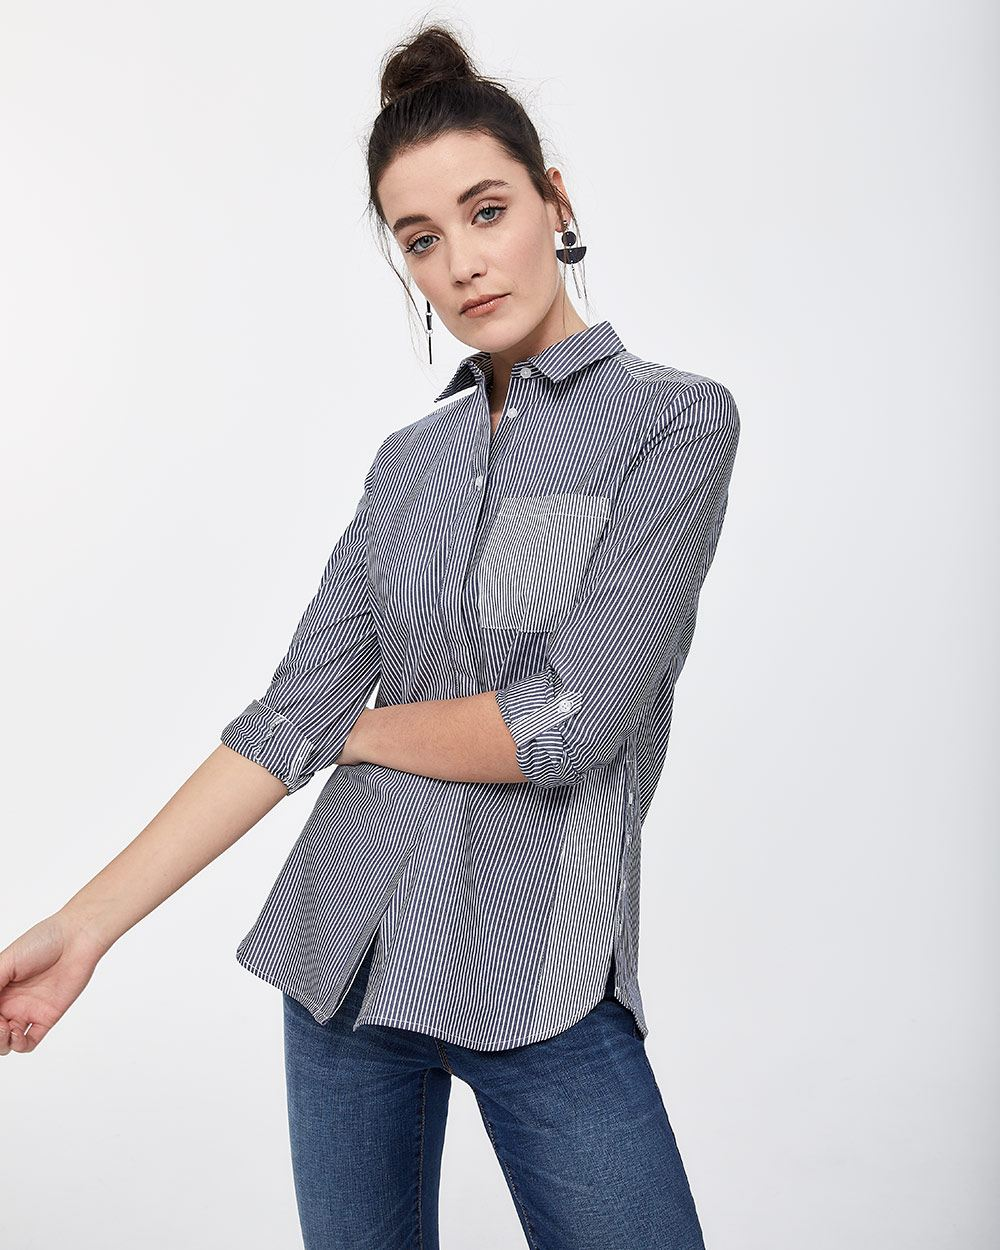 Mixed Stripes Poplin Shirt